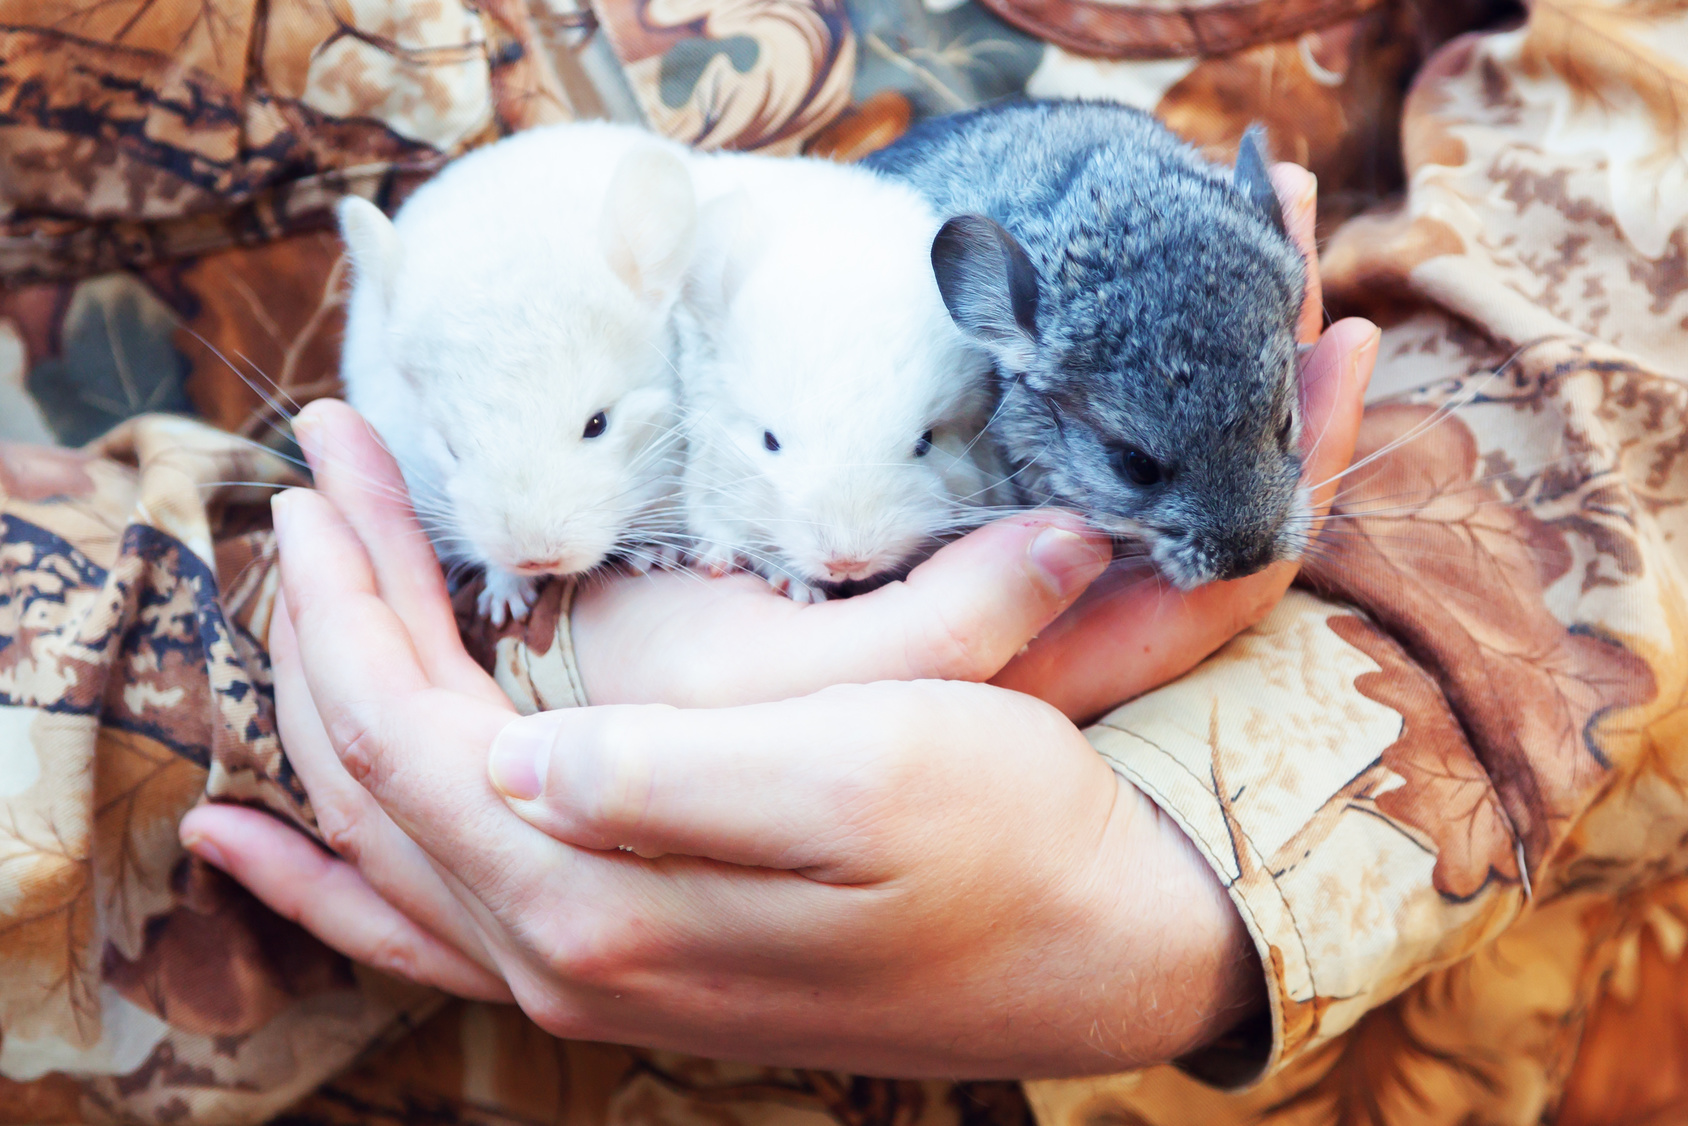 Three baby chinchillas in the hands